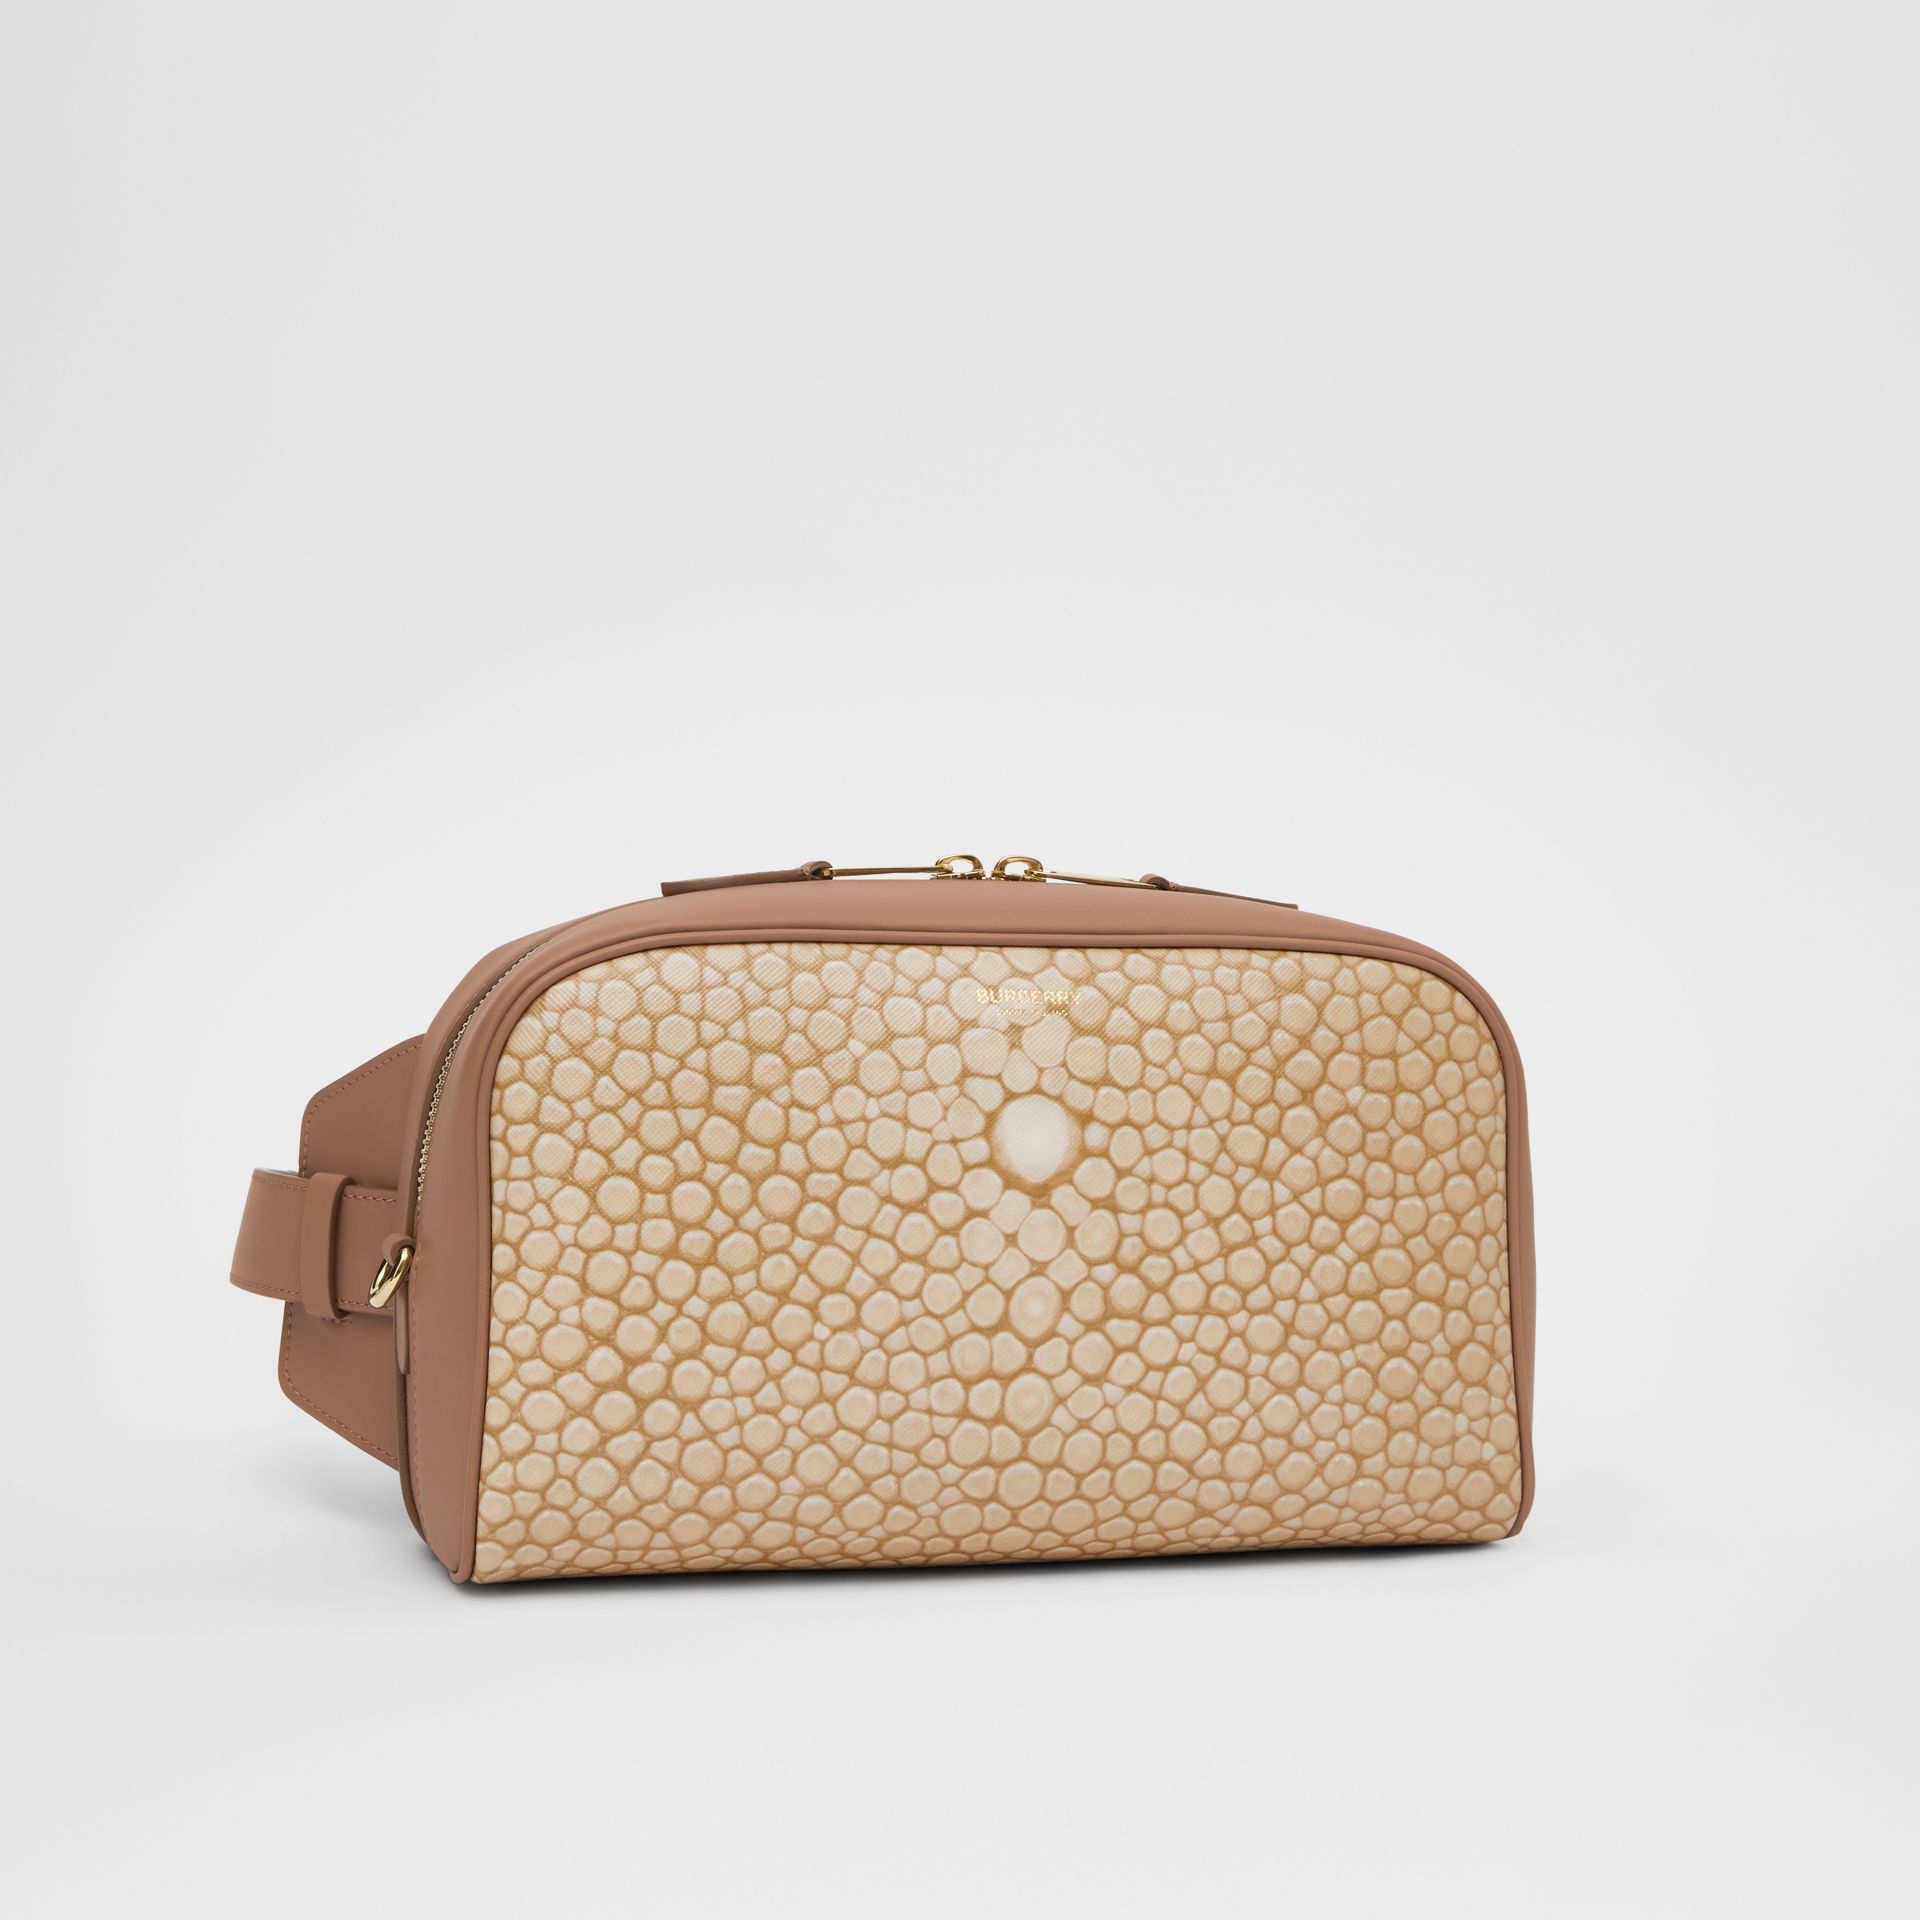 Fish-scale Print and Leather Cube Bum Bag in Light Sand - Women | Burberry - gallery image 4